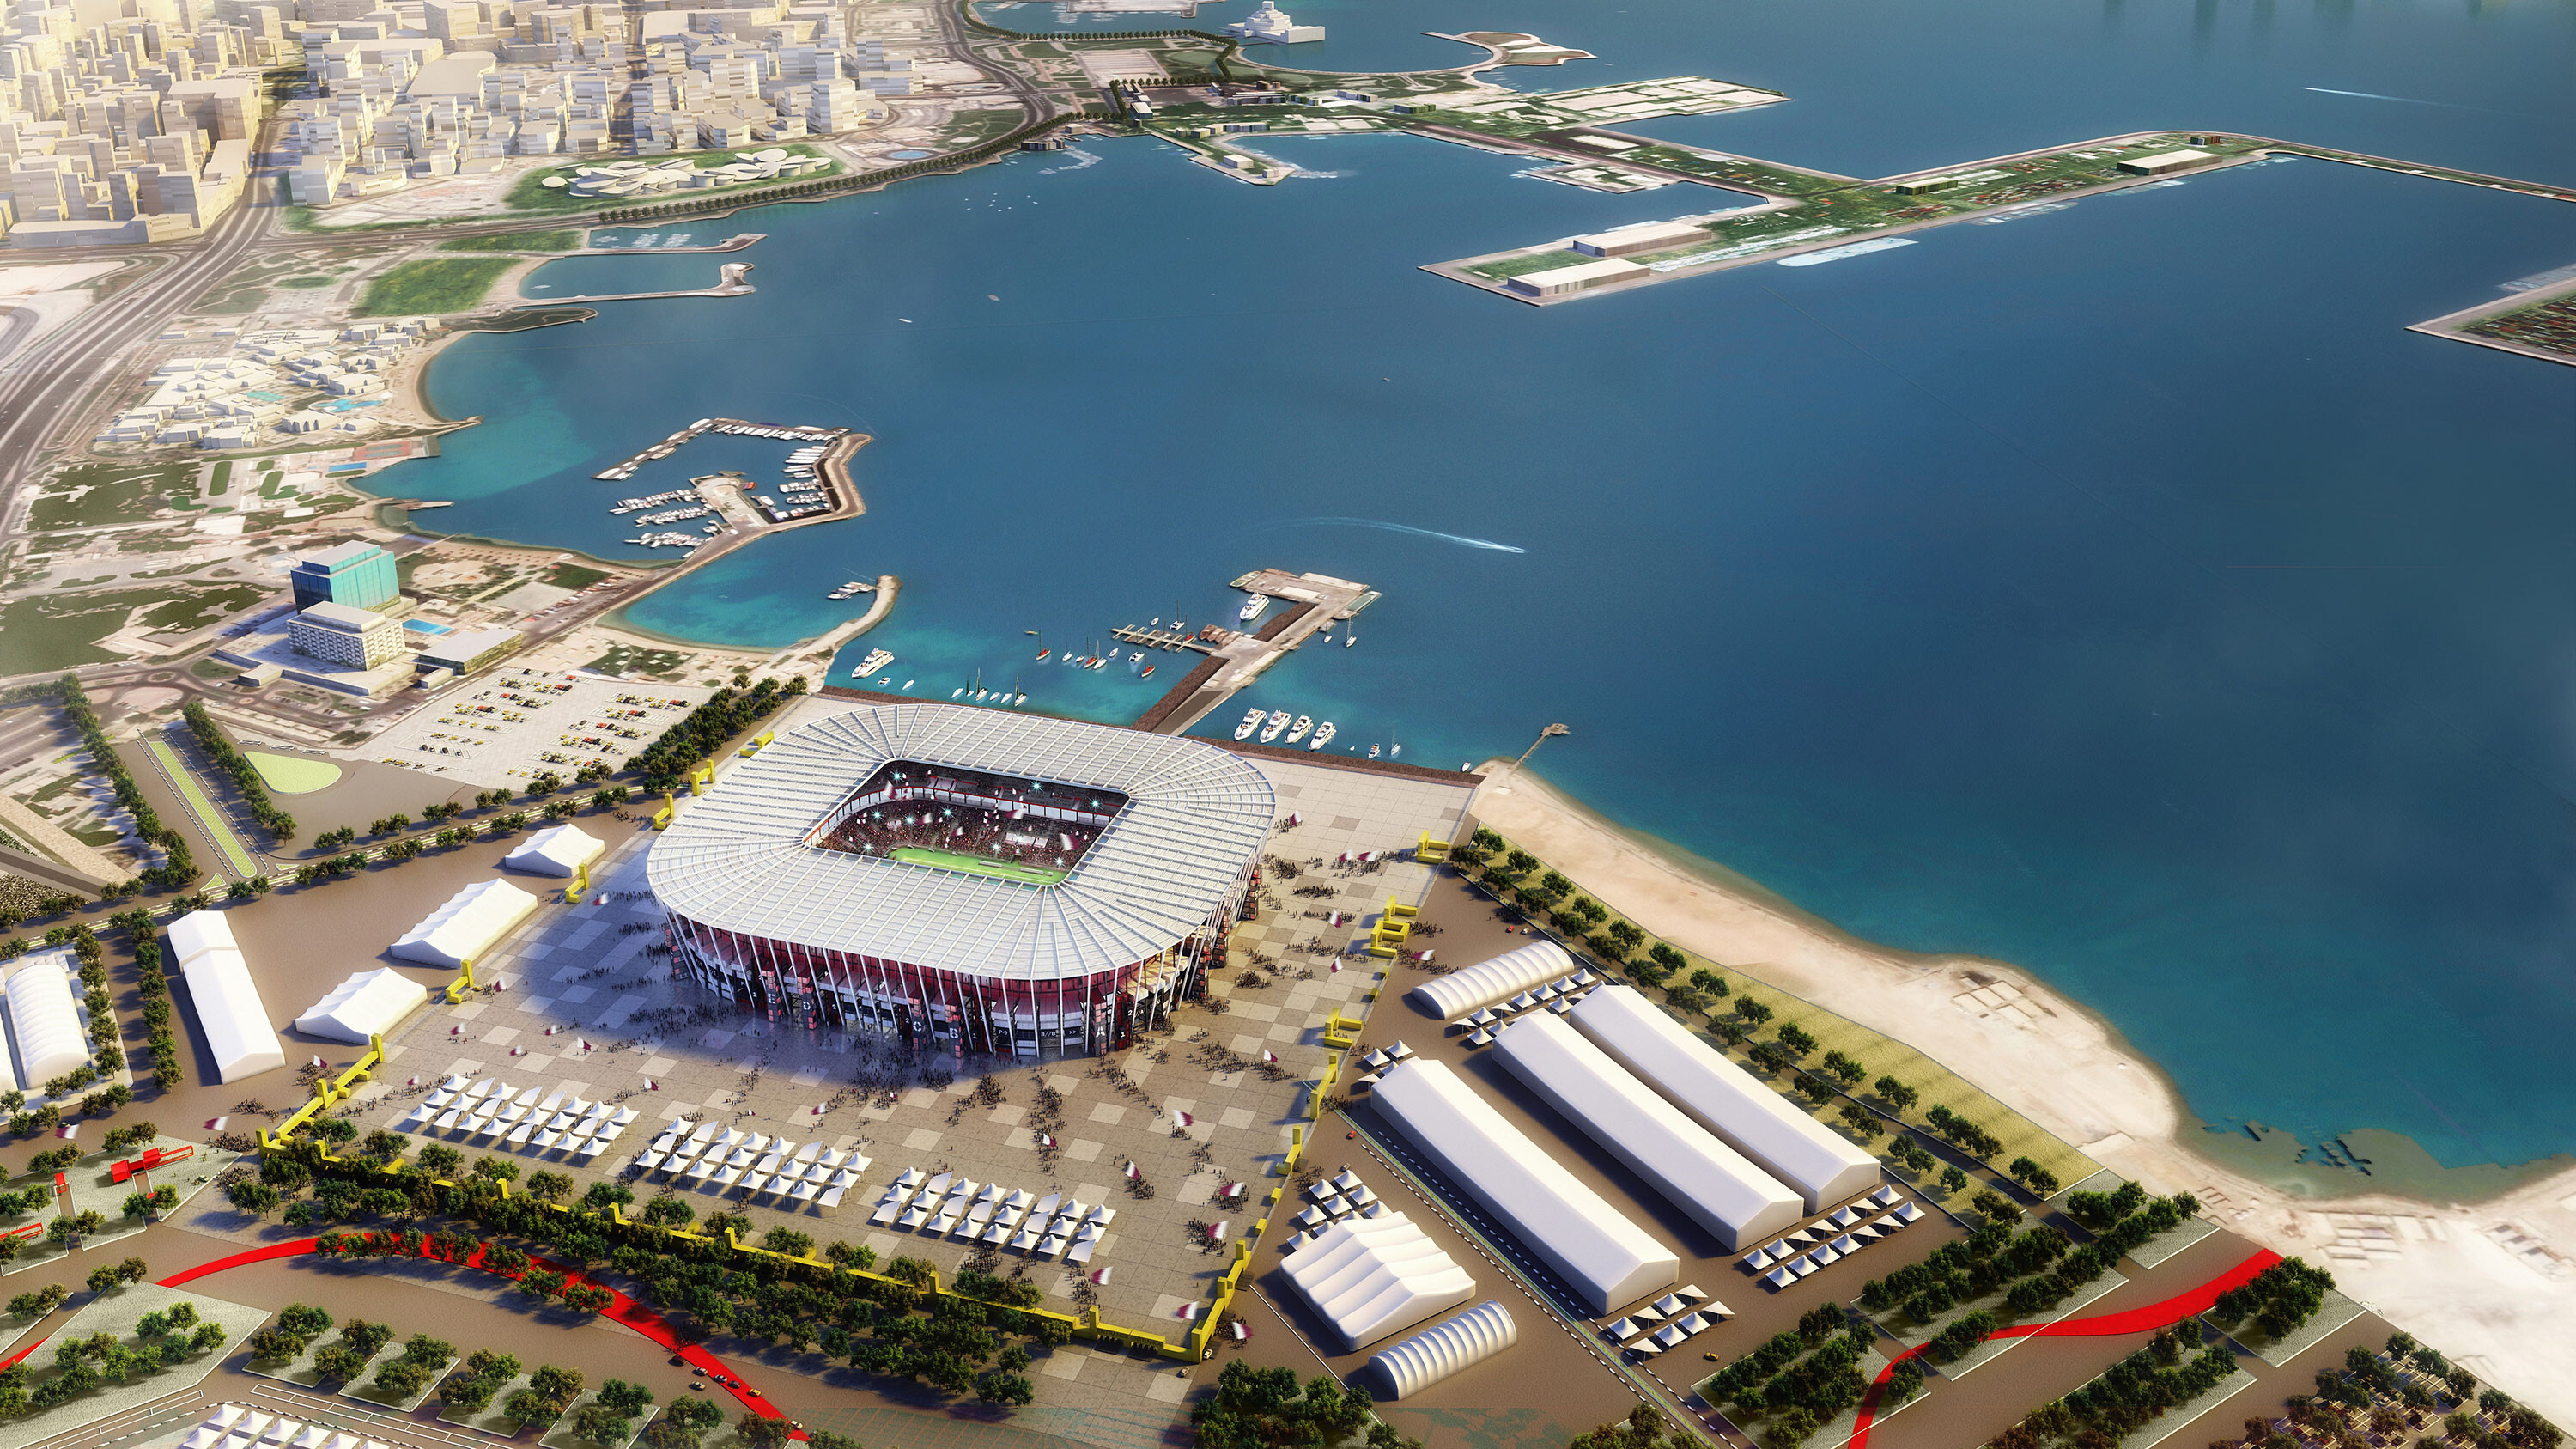 Qatar's Ras Abu Aboud stadium is the first built in World Cup history that was meant to be torn down